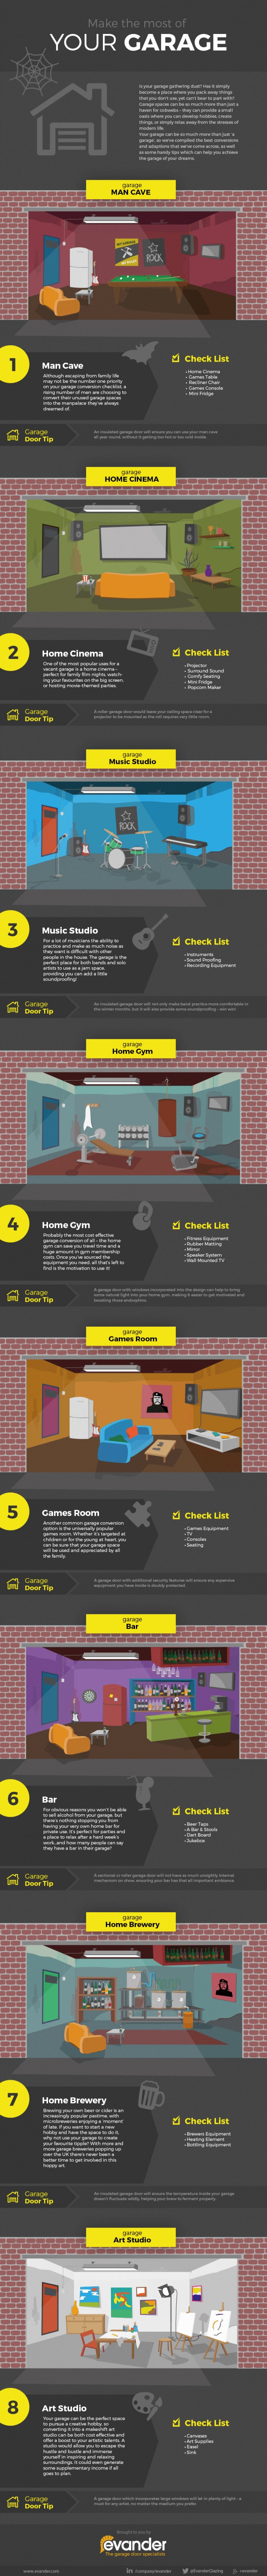 Are you using your garage to the greatest potential? Check out these great ideas to transform your garage and make the most out of it. Make the Most of your Garage infograpic via @tipsaholic #garage #diy #home